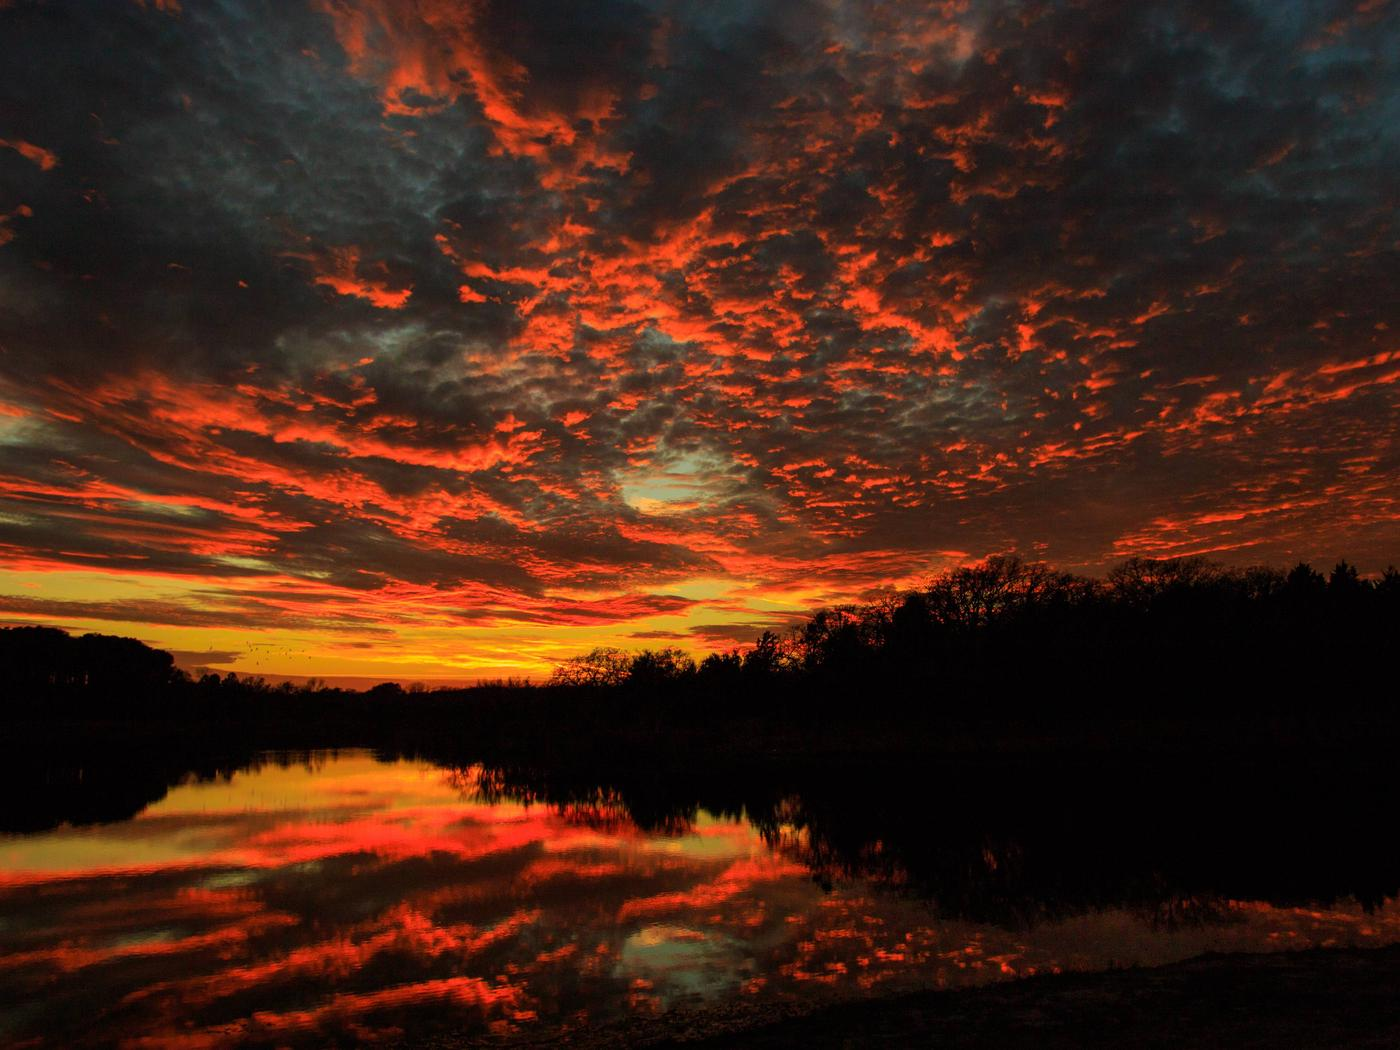 Sunset and reflection on Black Creek LakeBlack Creek Lake on the LBJ Grasslands in Texas